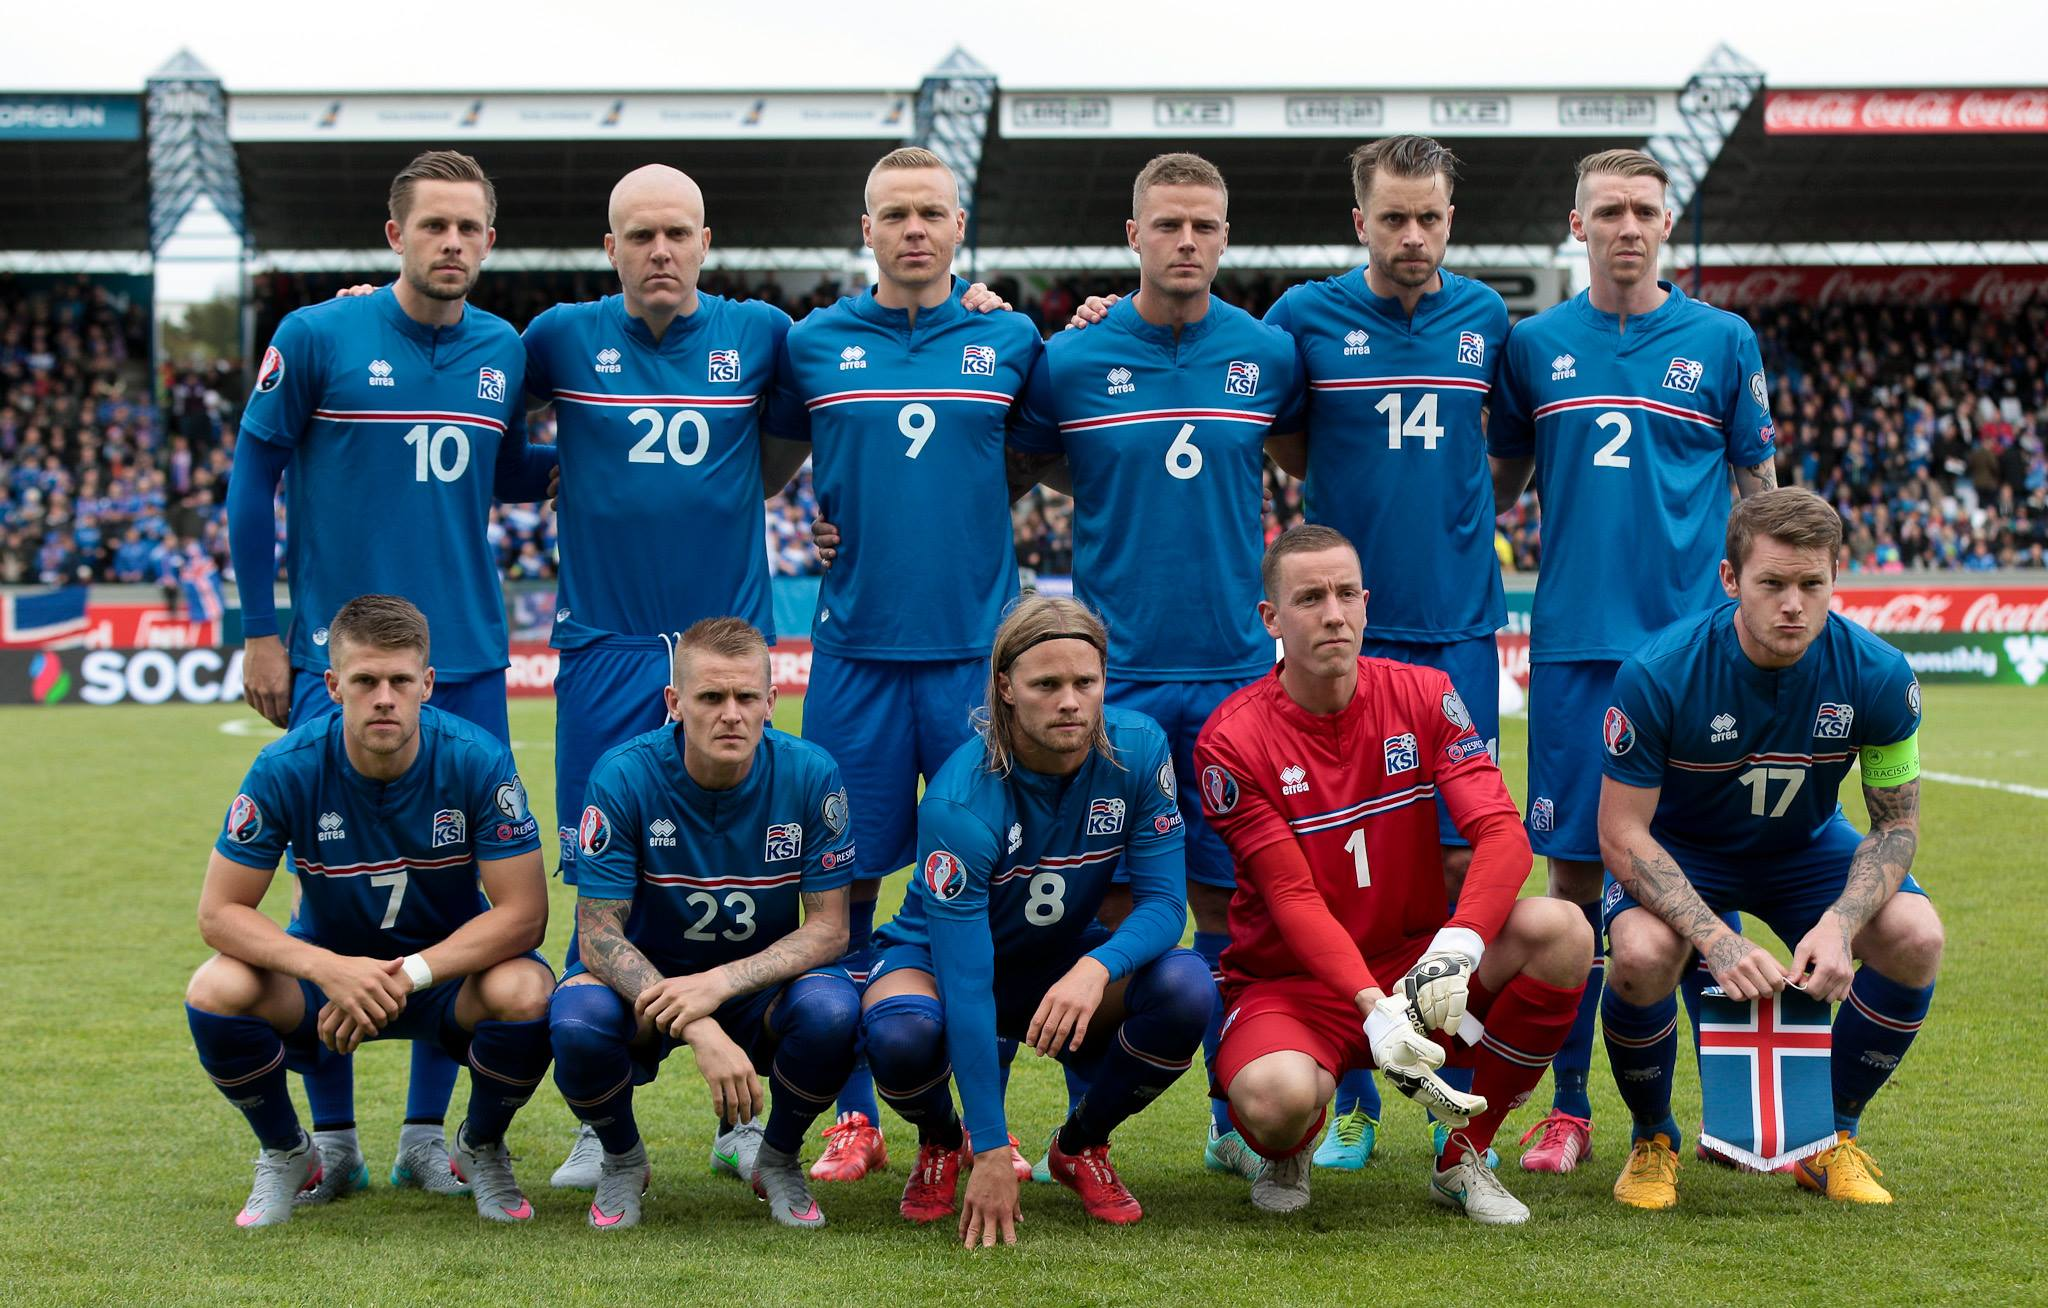 Iceland's National Team have become Legends back home after their Euro 2016 campaign.